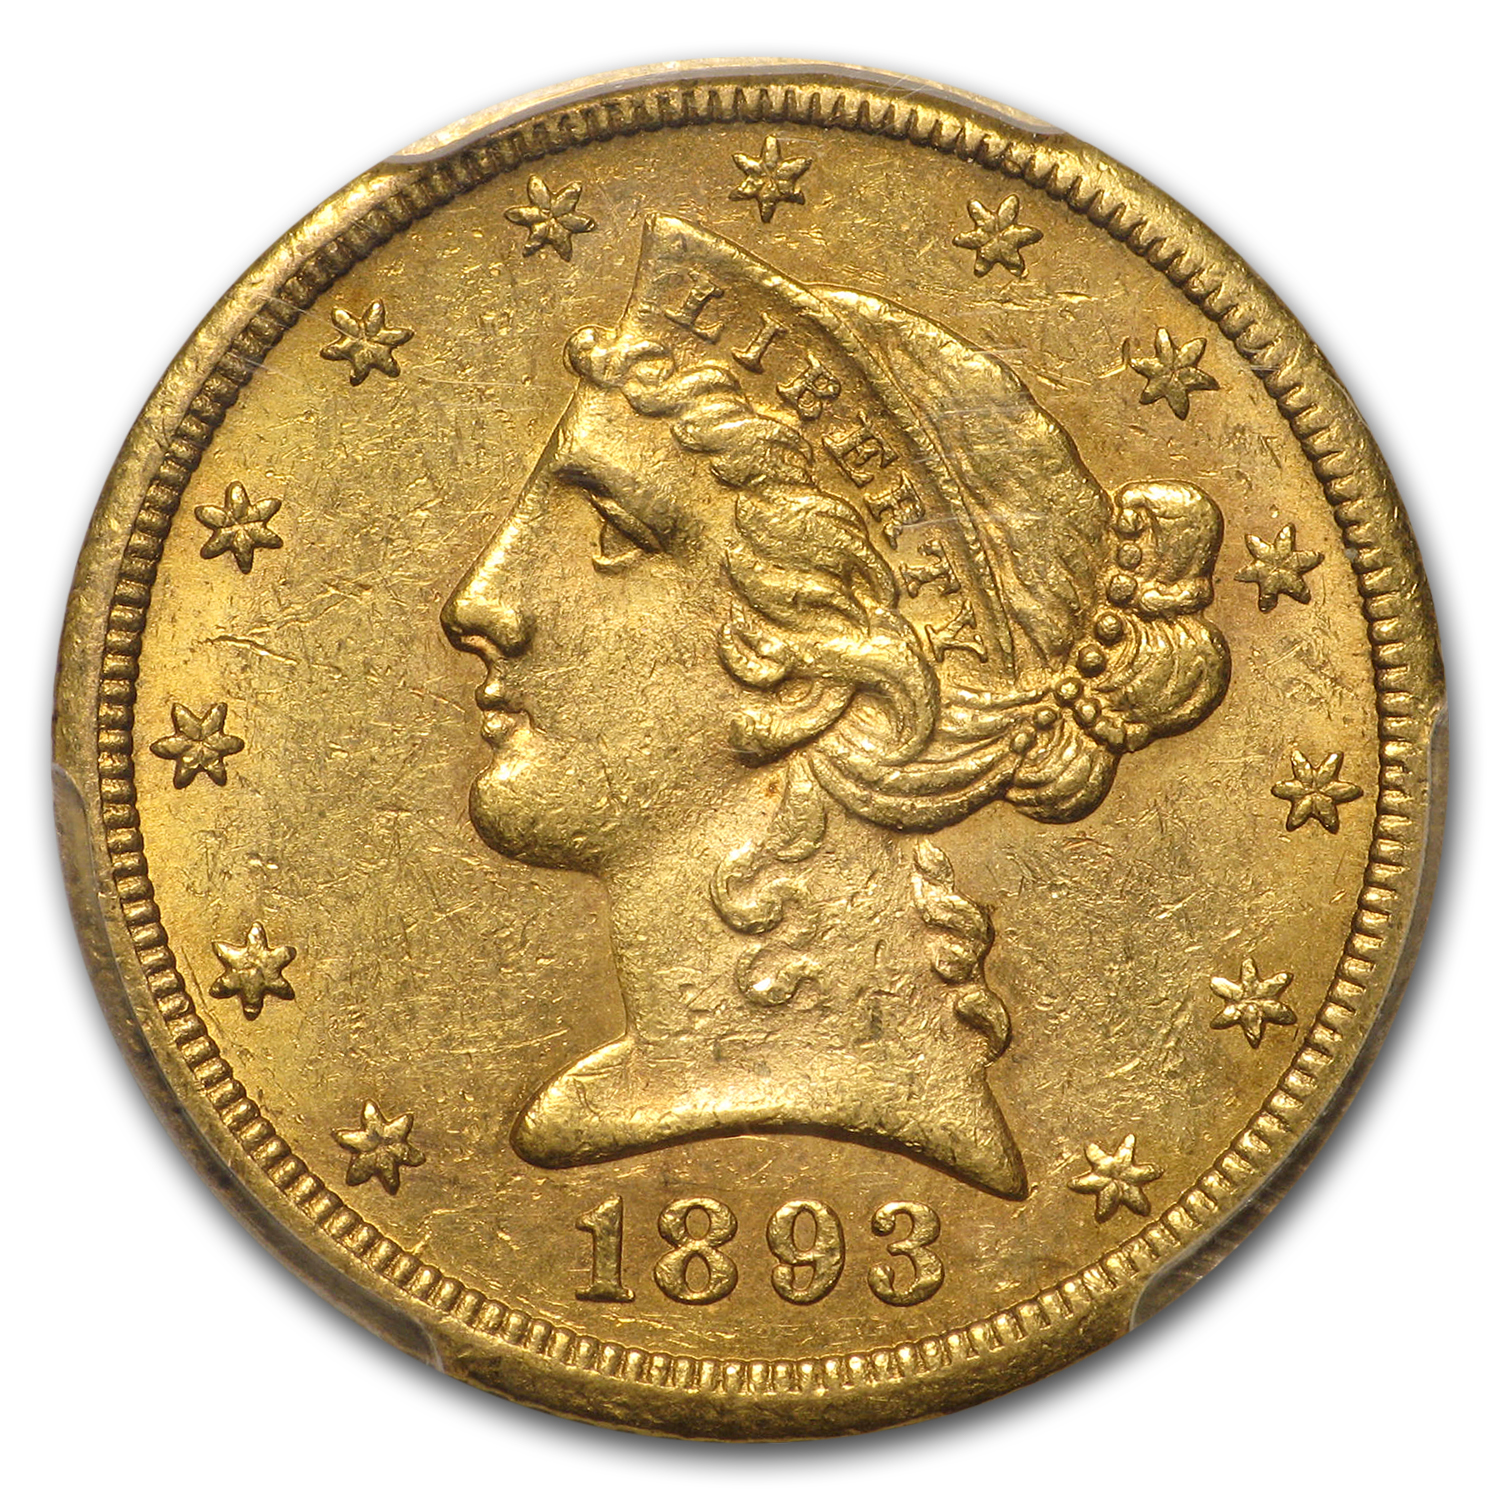 1893-CC $5 Liberty Gold Half Eagle MS-61 PCGS